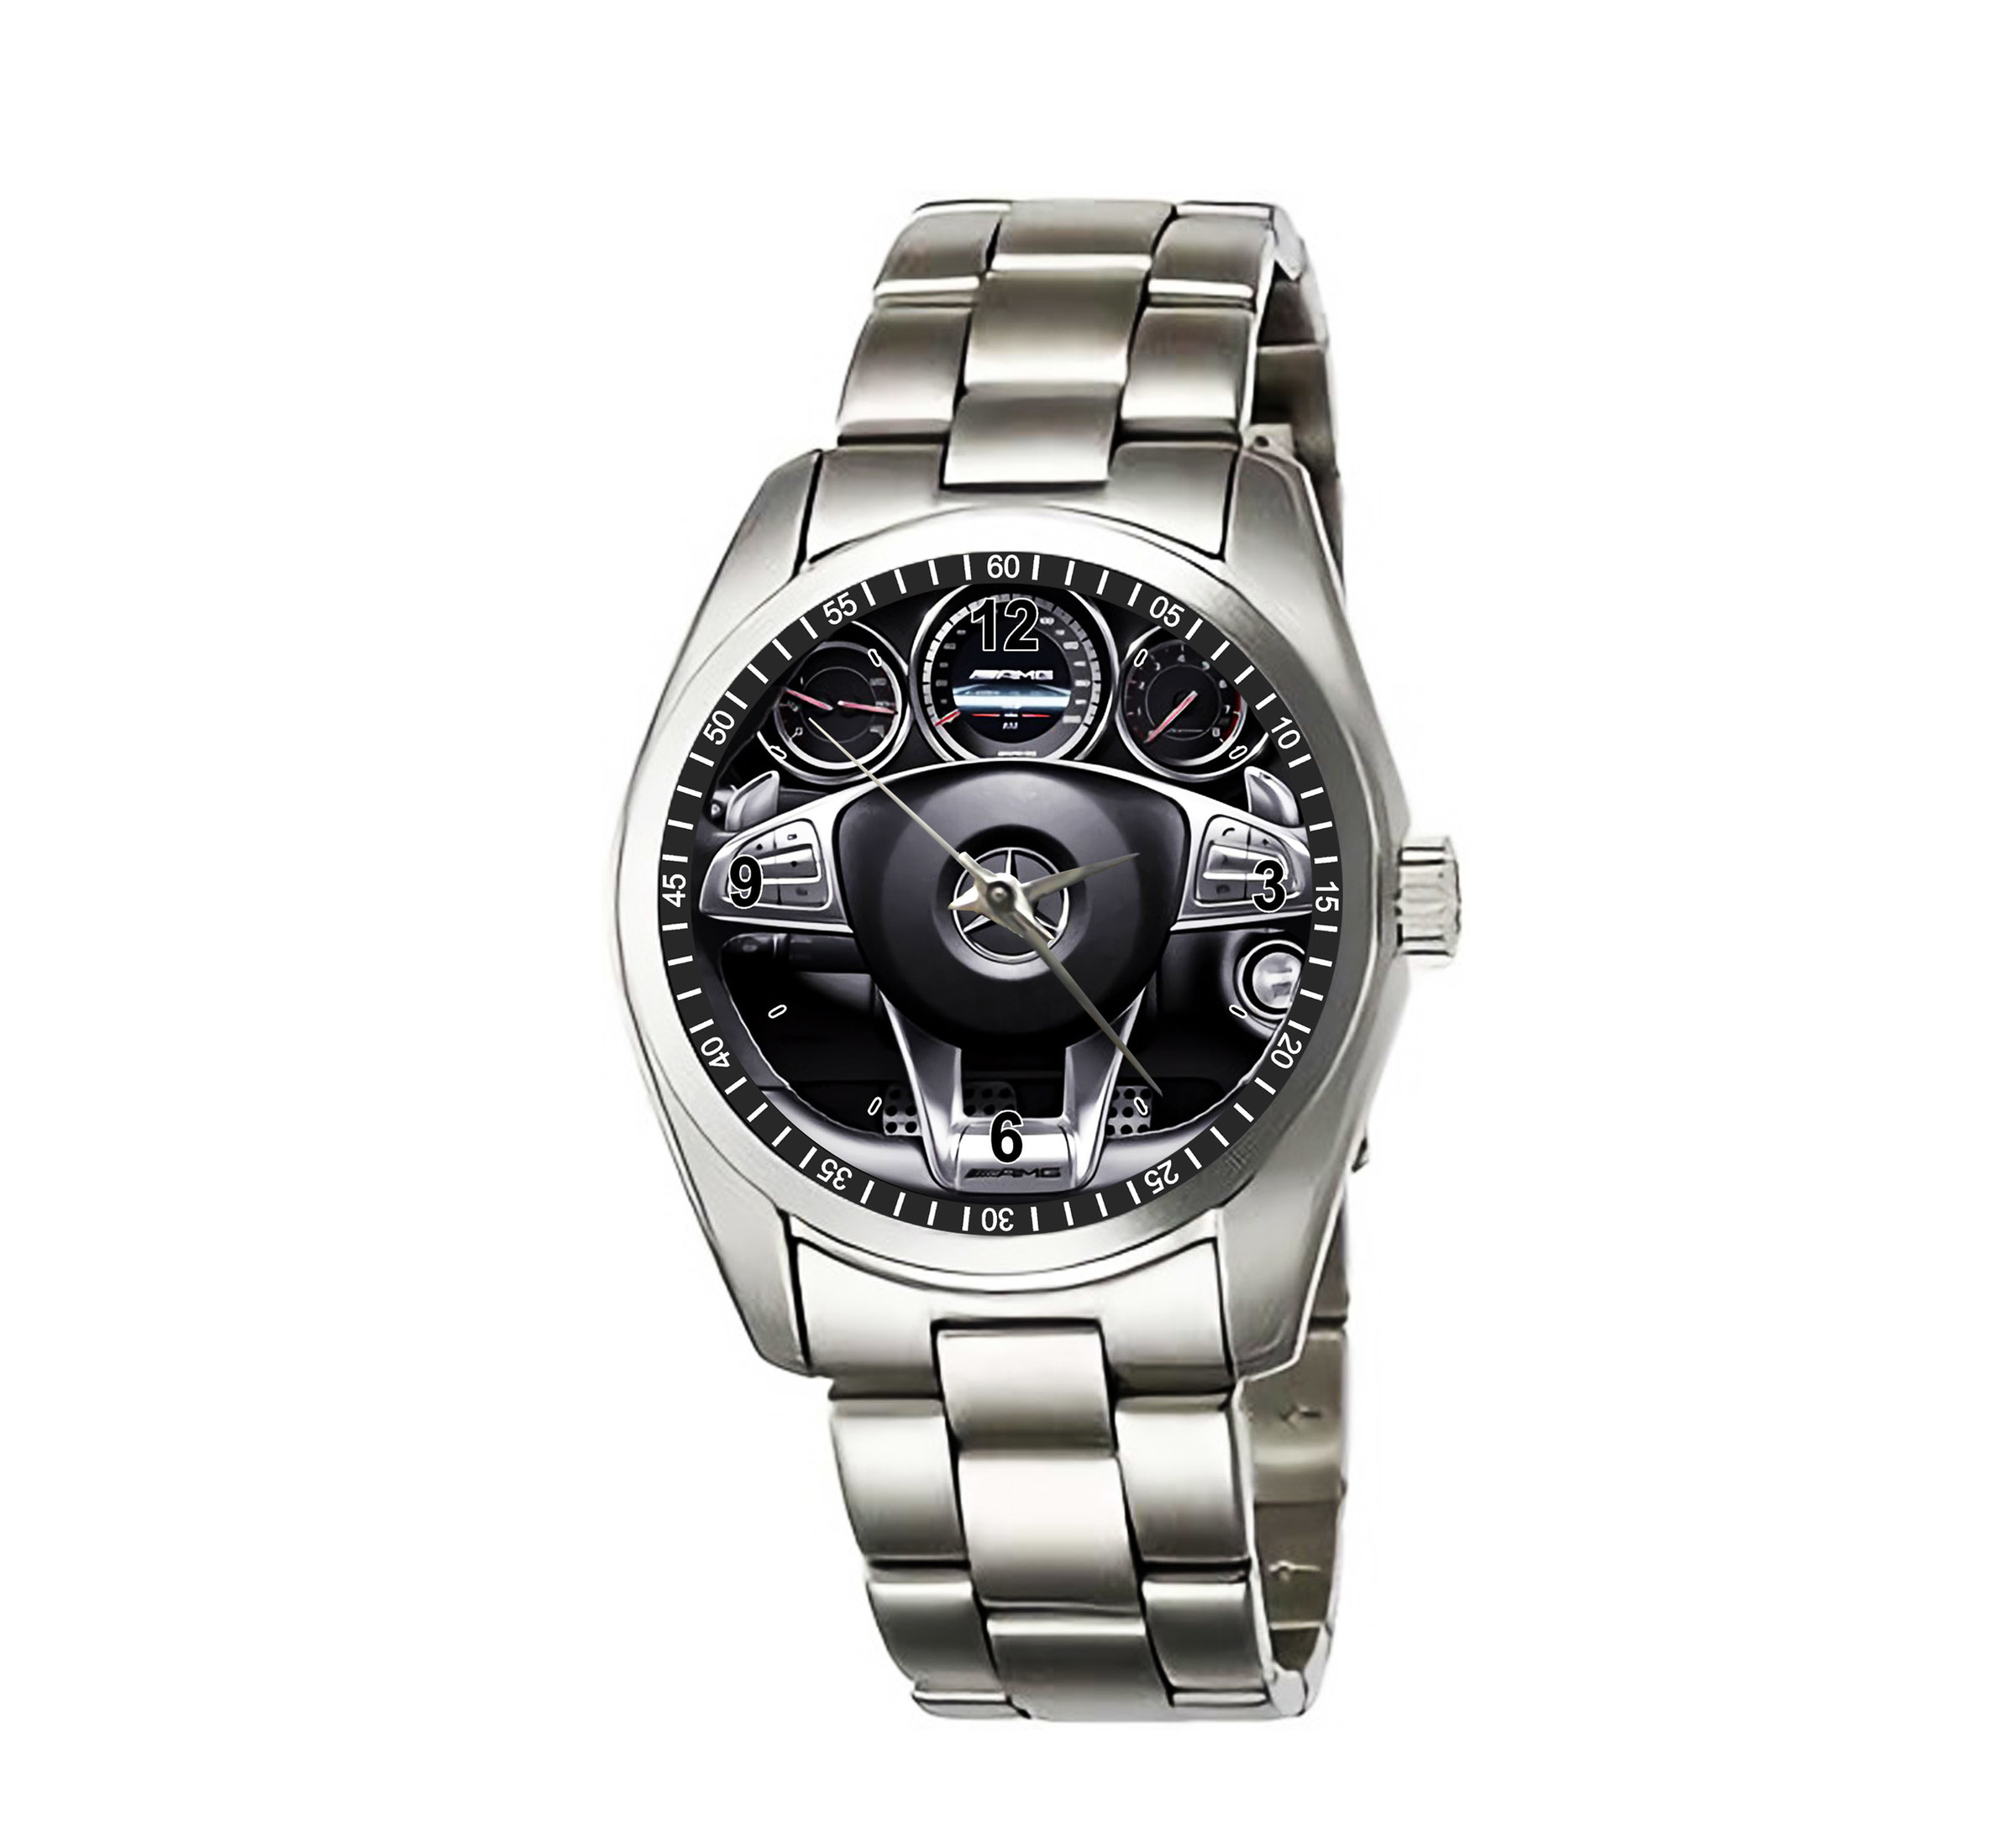 094-Mercedes Benzz CLS CLASS CLS63 AMG steering wheel Wristwatches (2).jpg